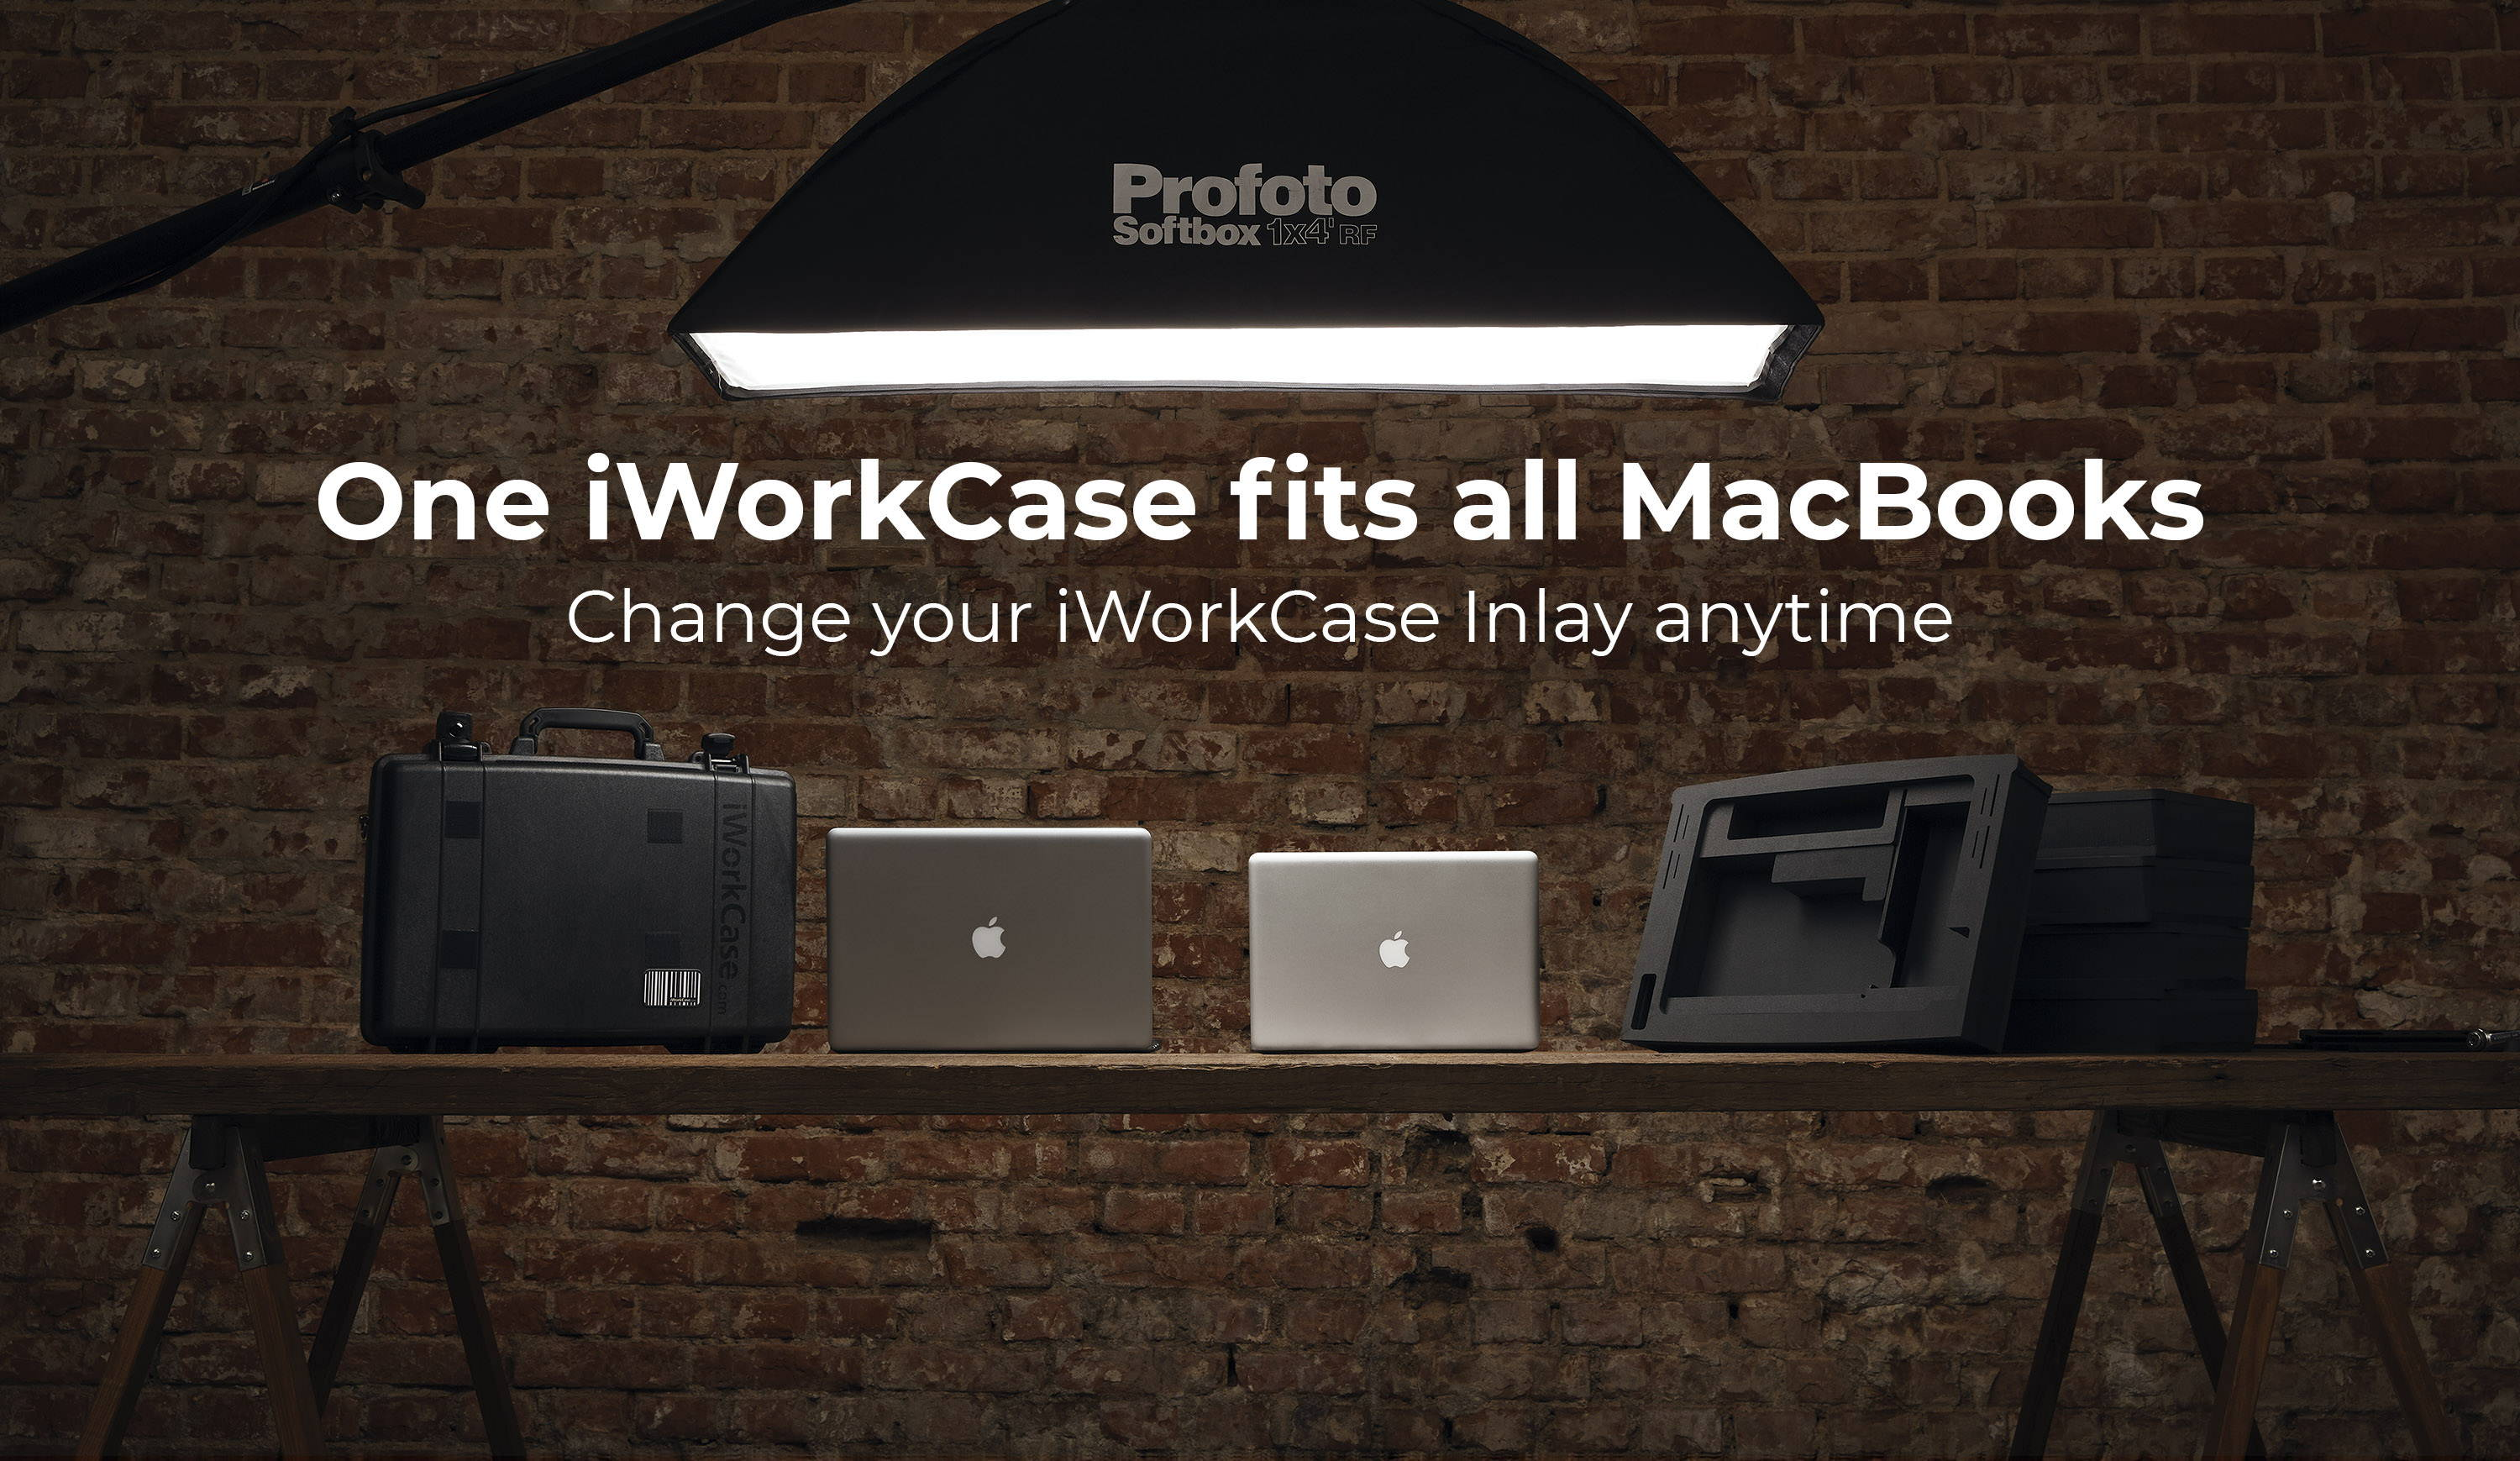 change your iworkcase inlays anytime